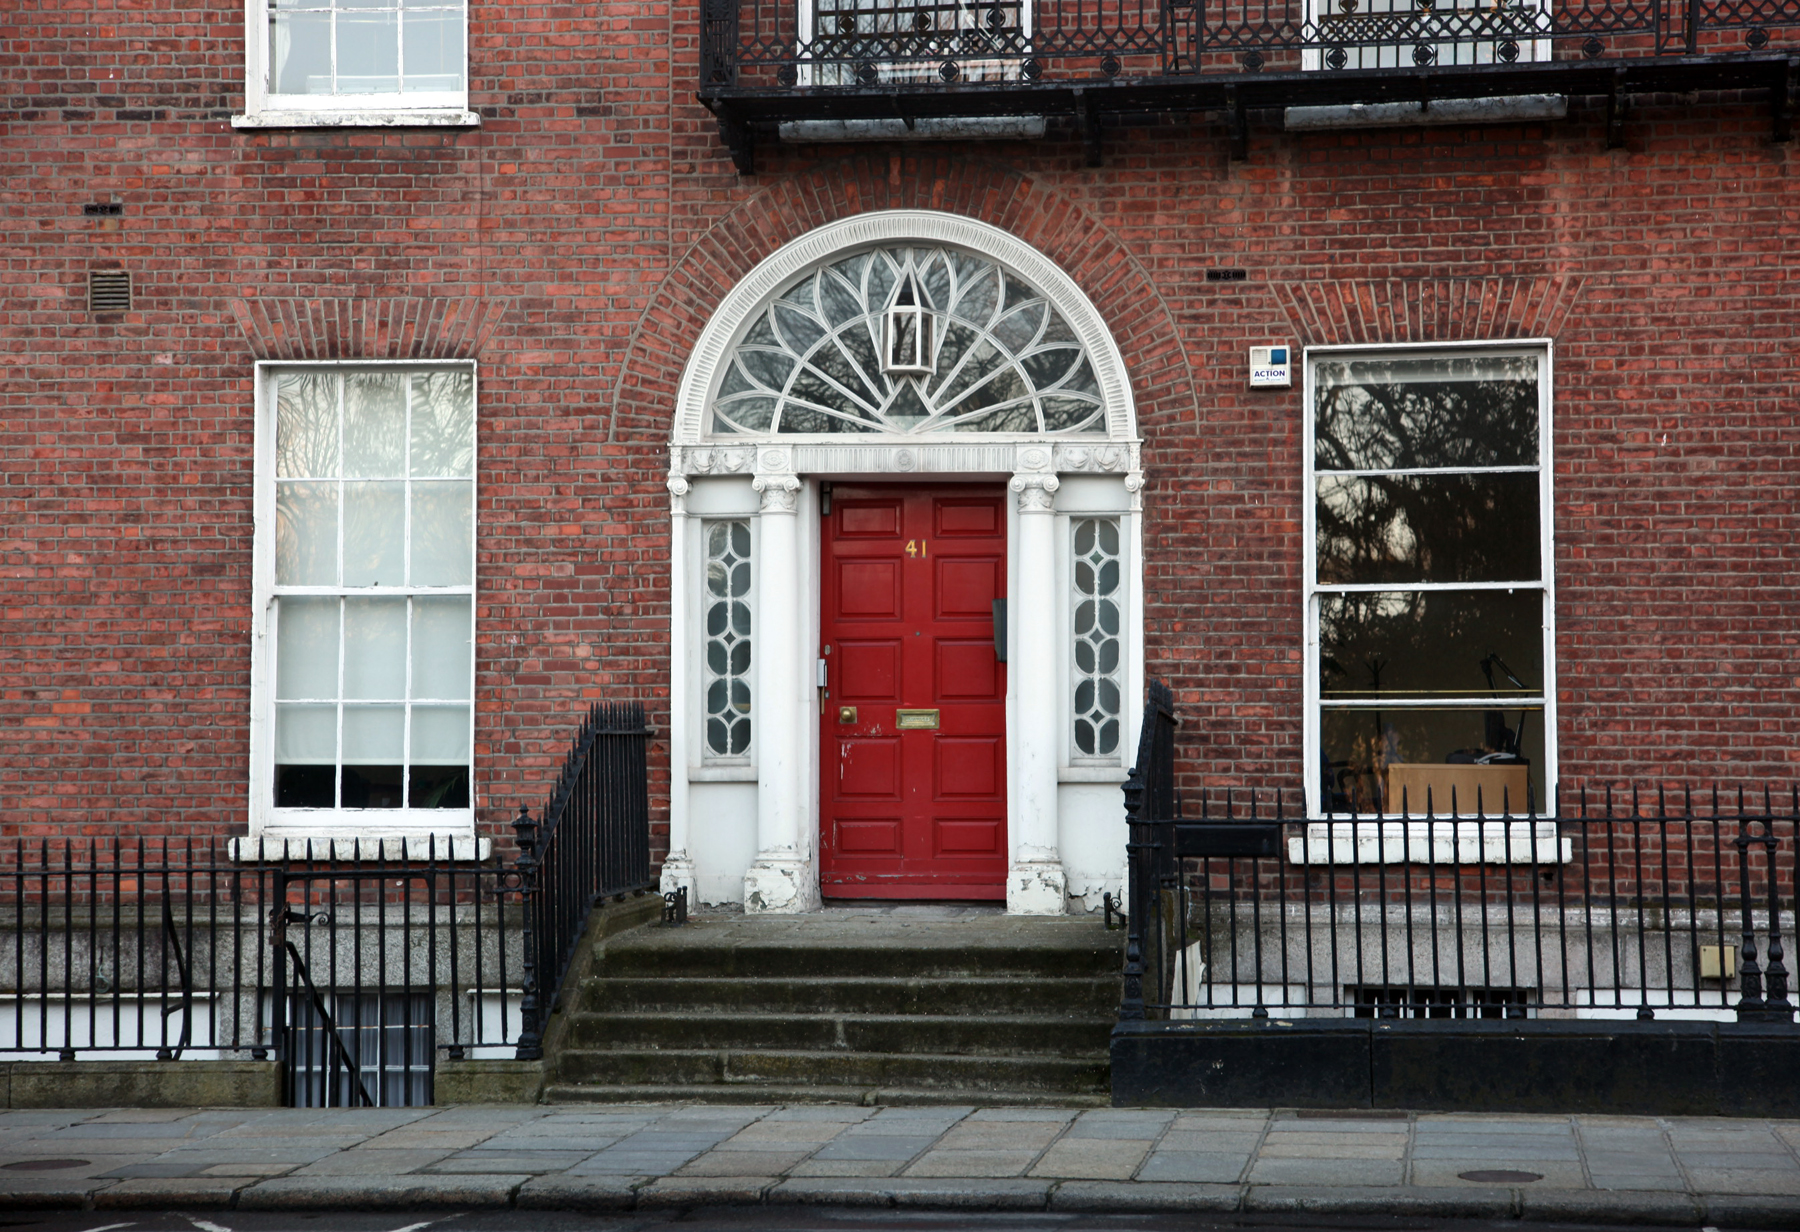 Fanlight 41 Merrion Square Dublin 2 Built Dublin